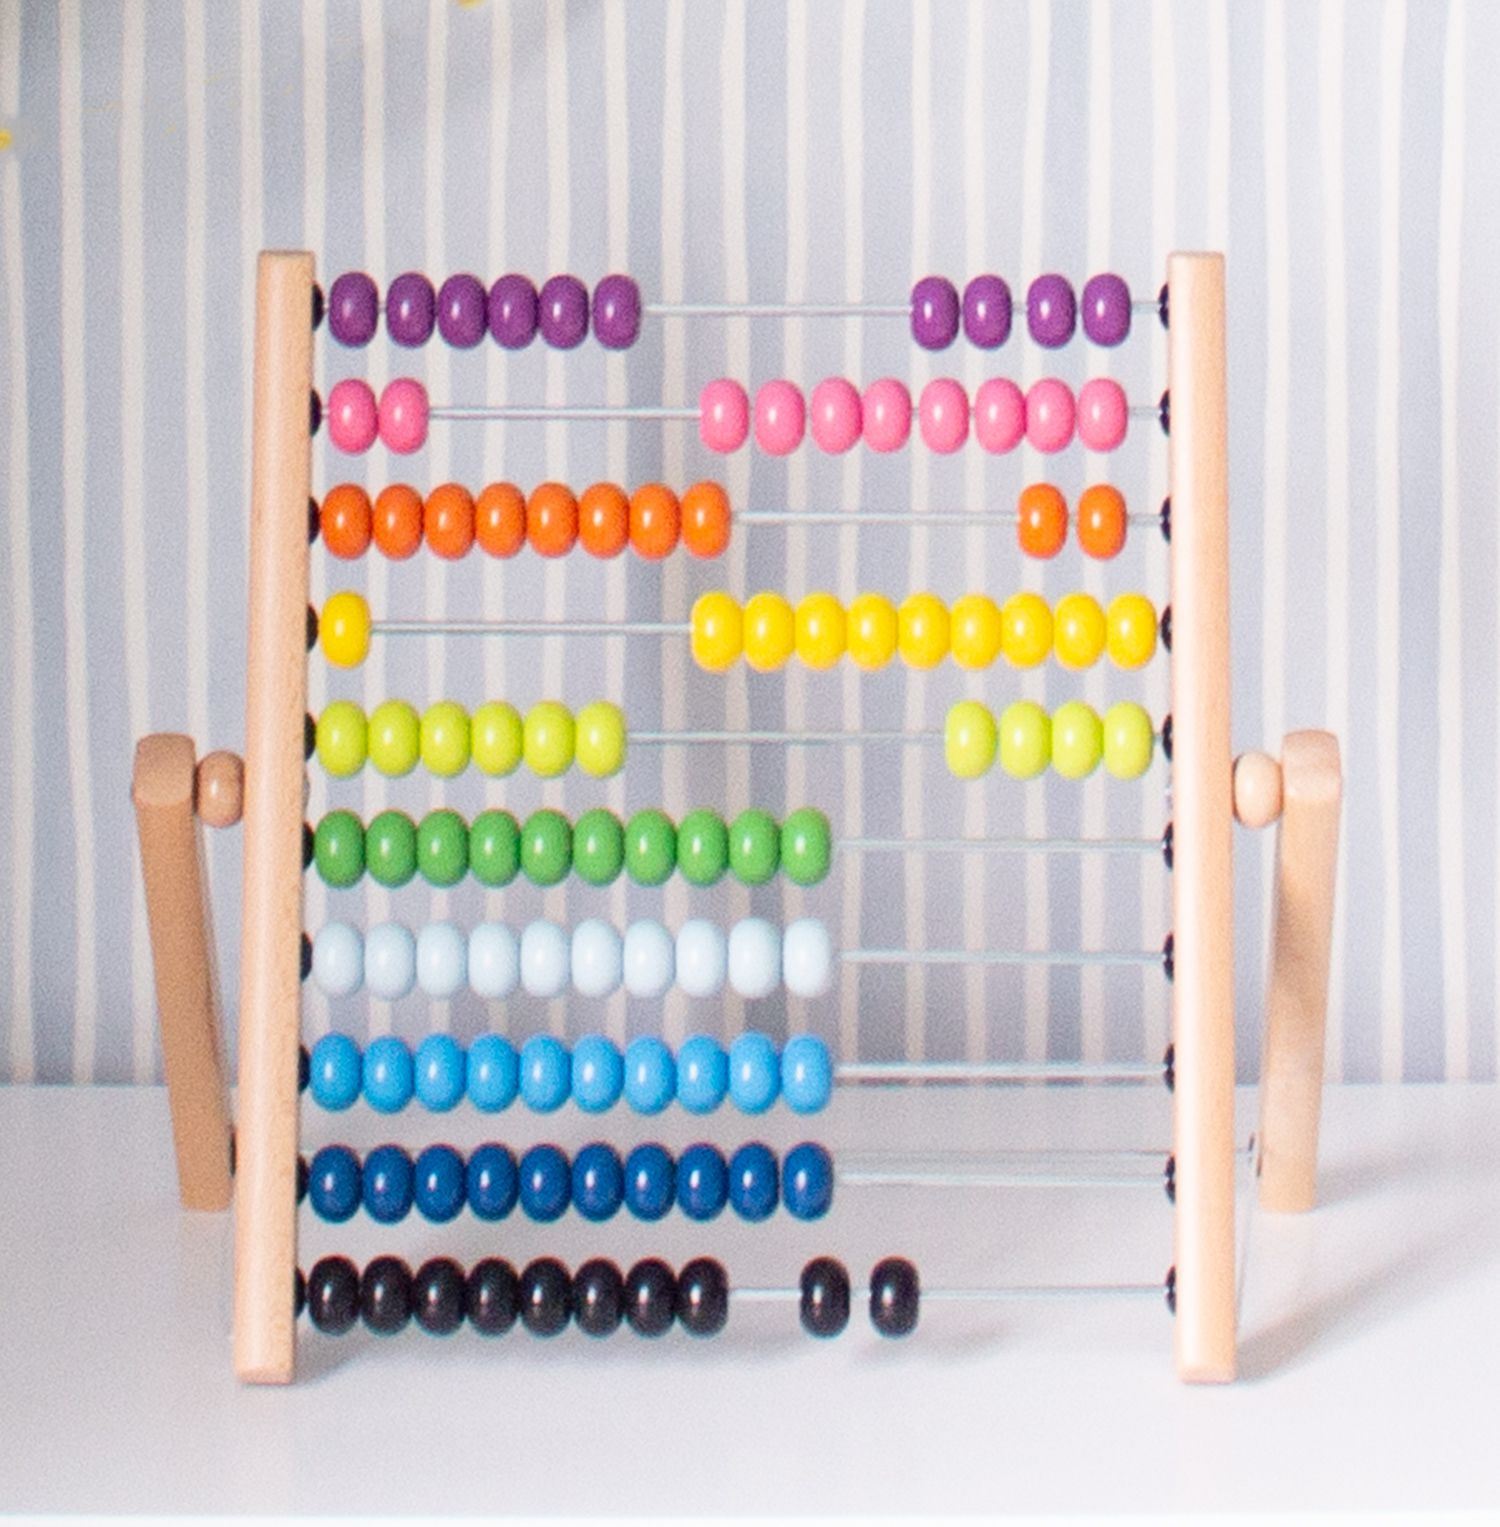 A close up of the rainbow coloured abacus on top of the dresser.